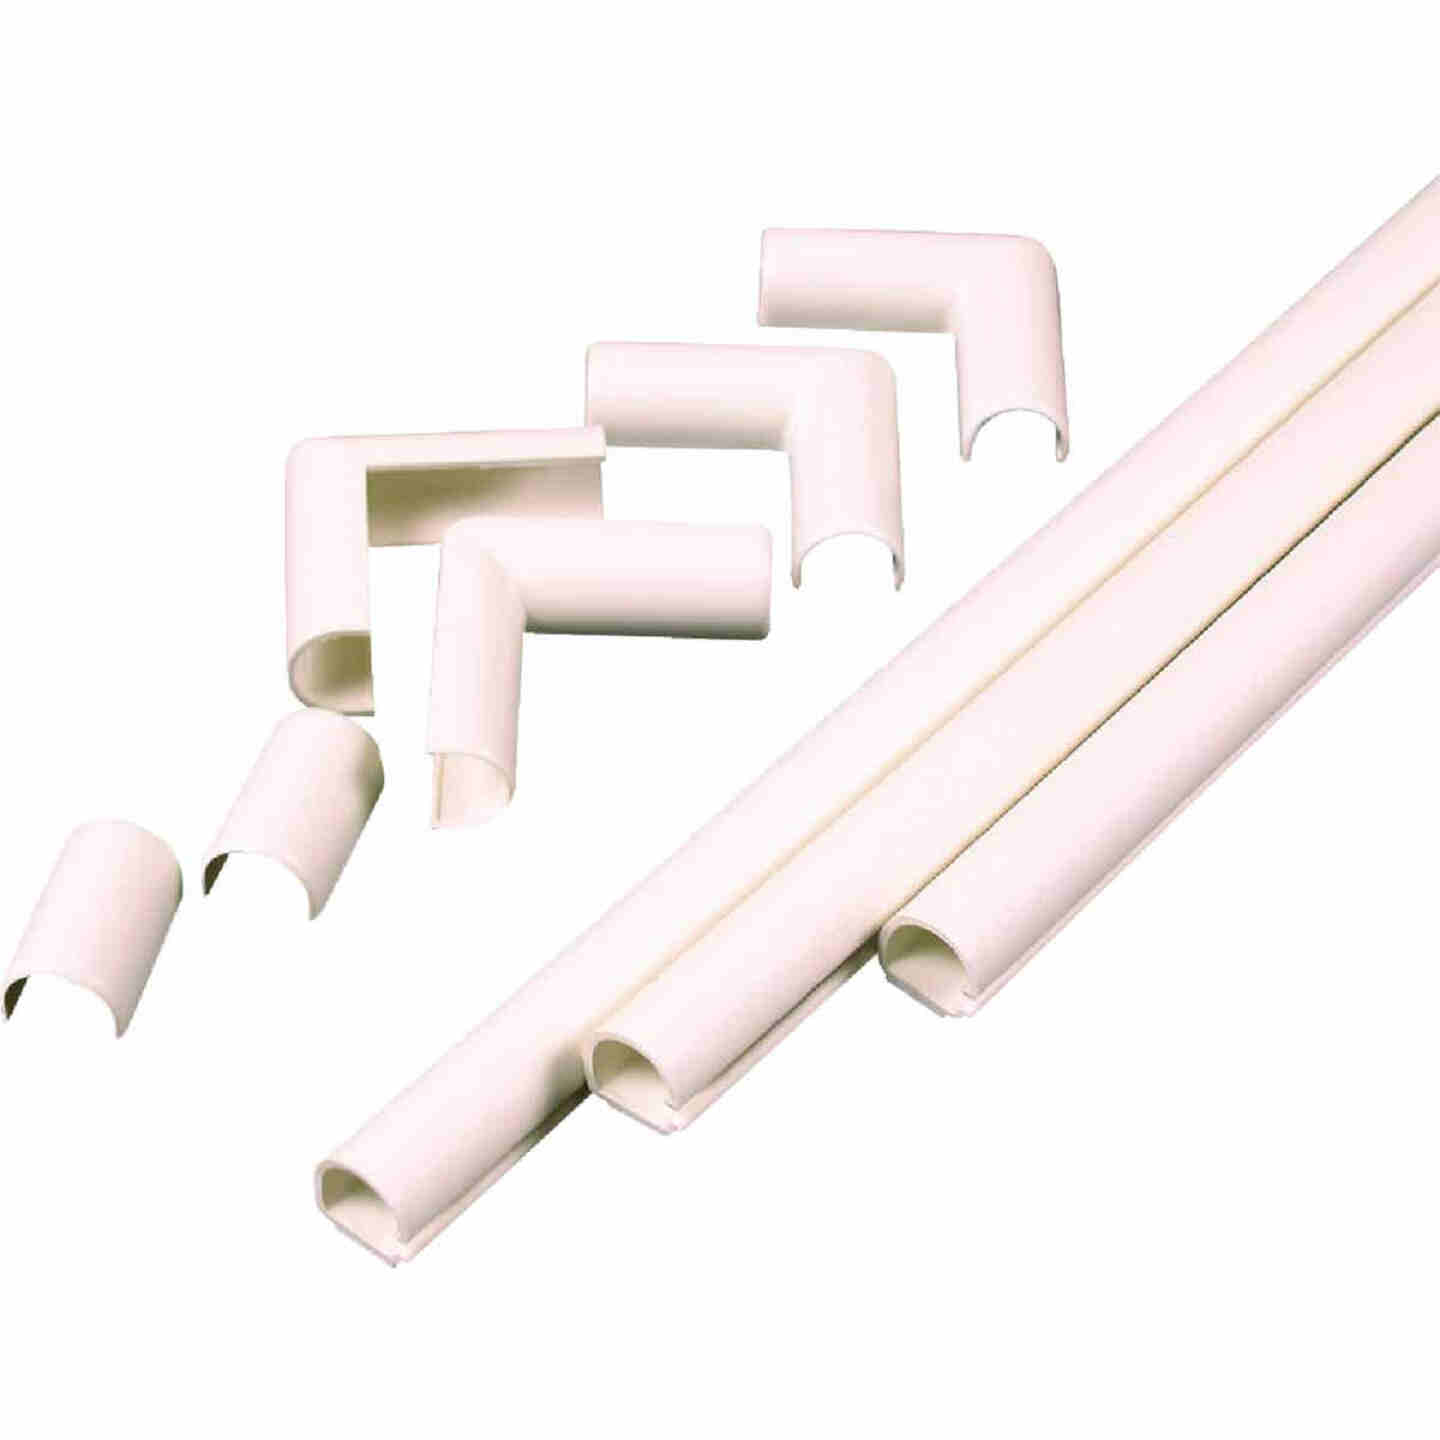 Wiremold CordMate 1/2 In. x 3 Ft. Ivory Channel Image 1